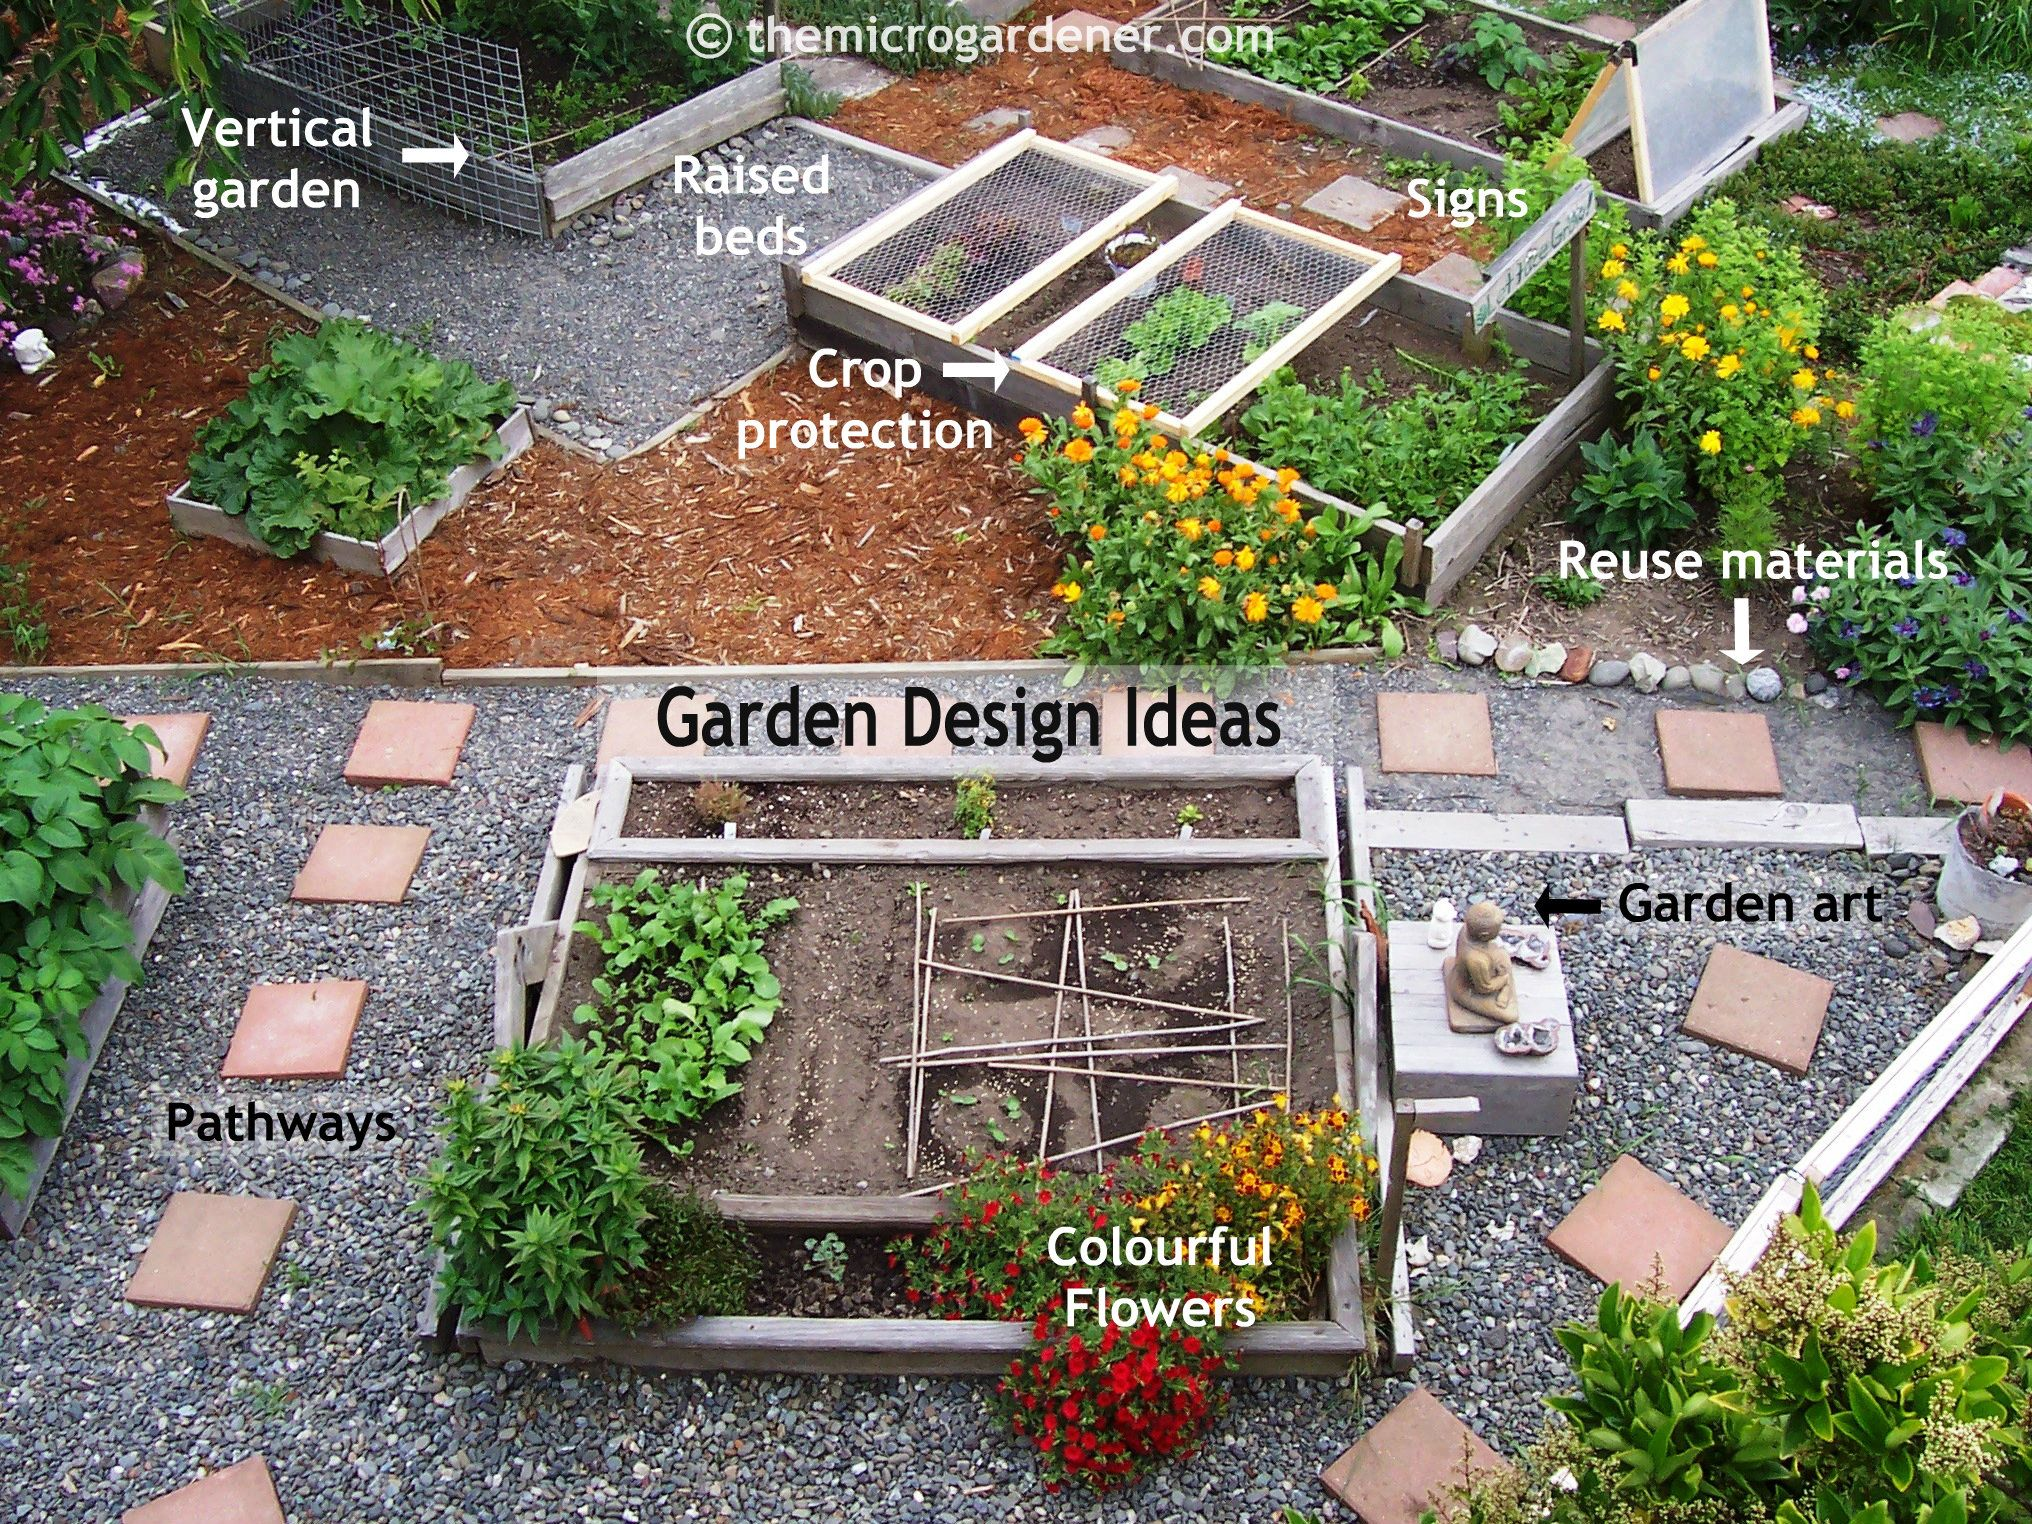 ipinimgcomoriginals58fa7158fa7190cf35e83174 - Kitchen Garden Design